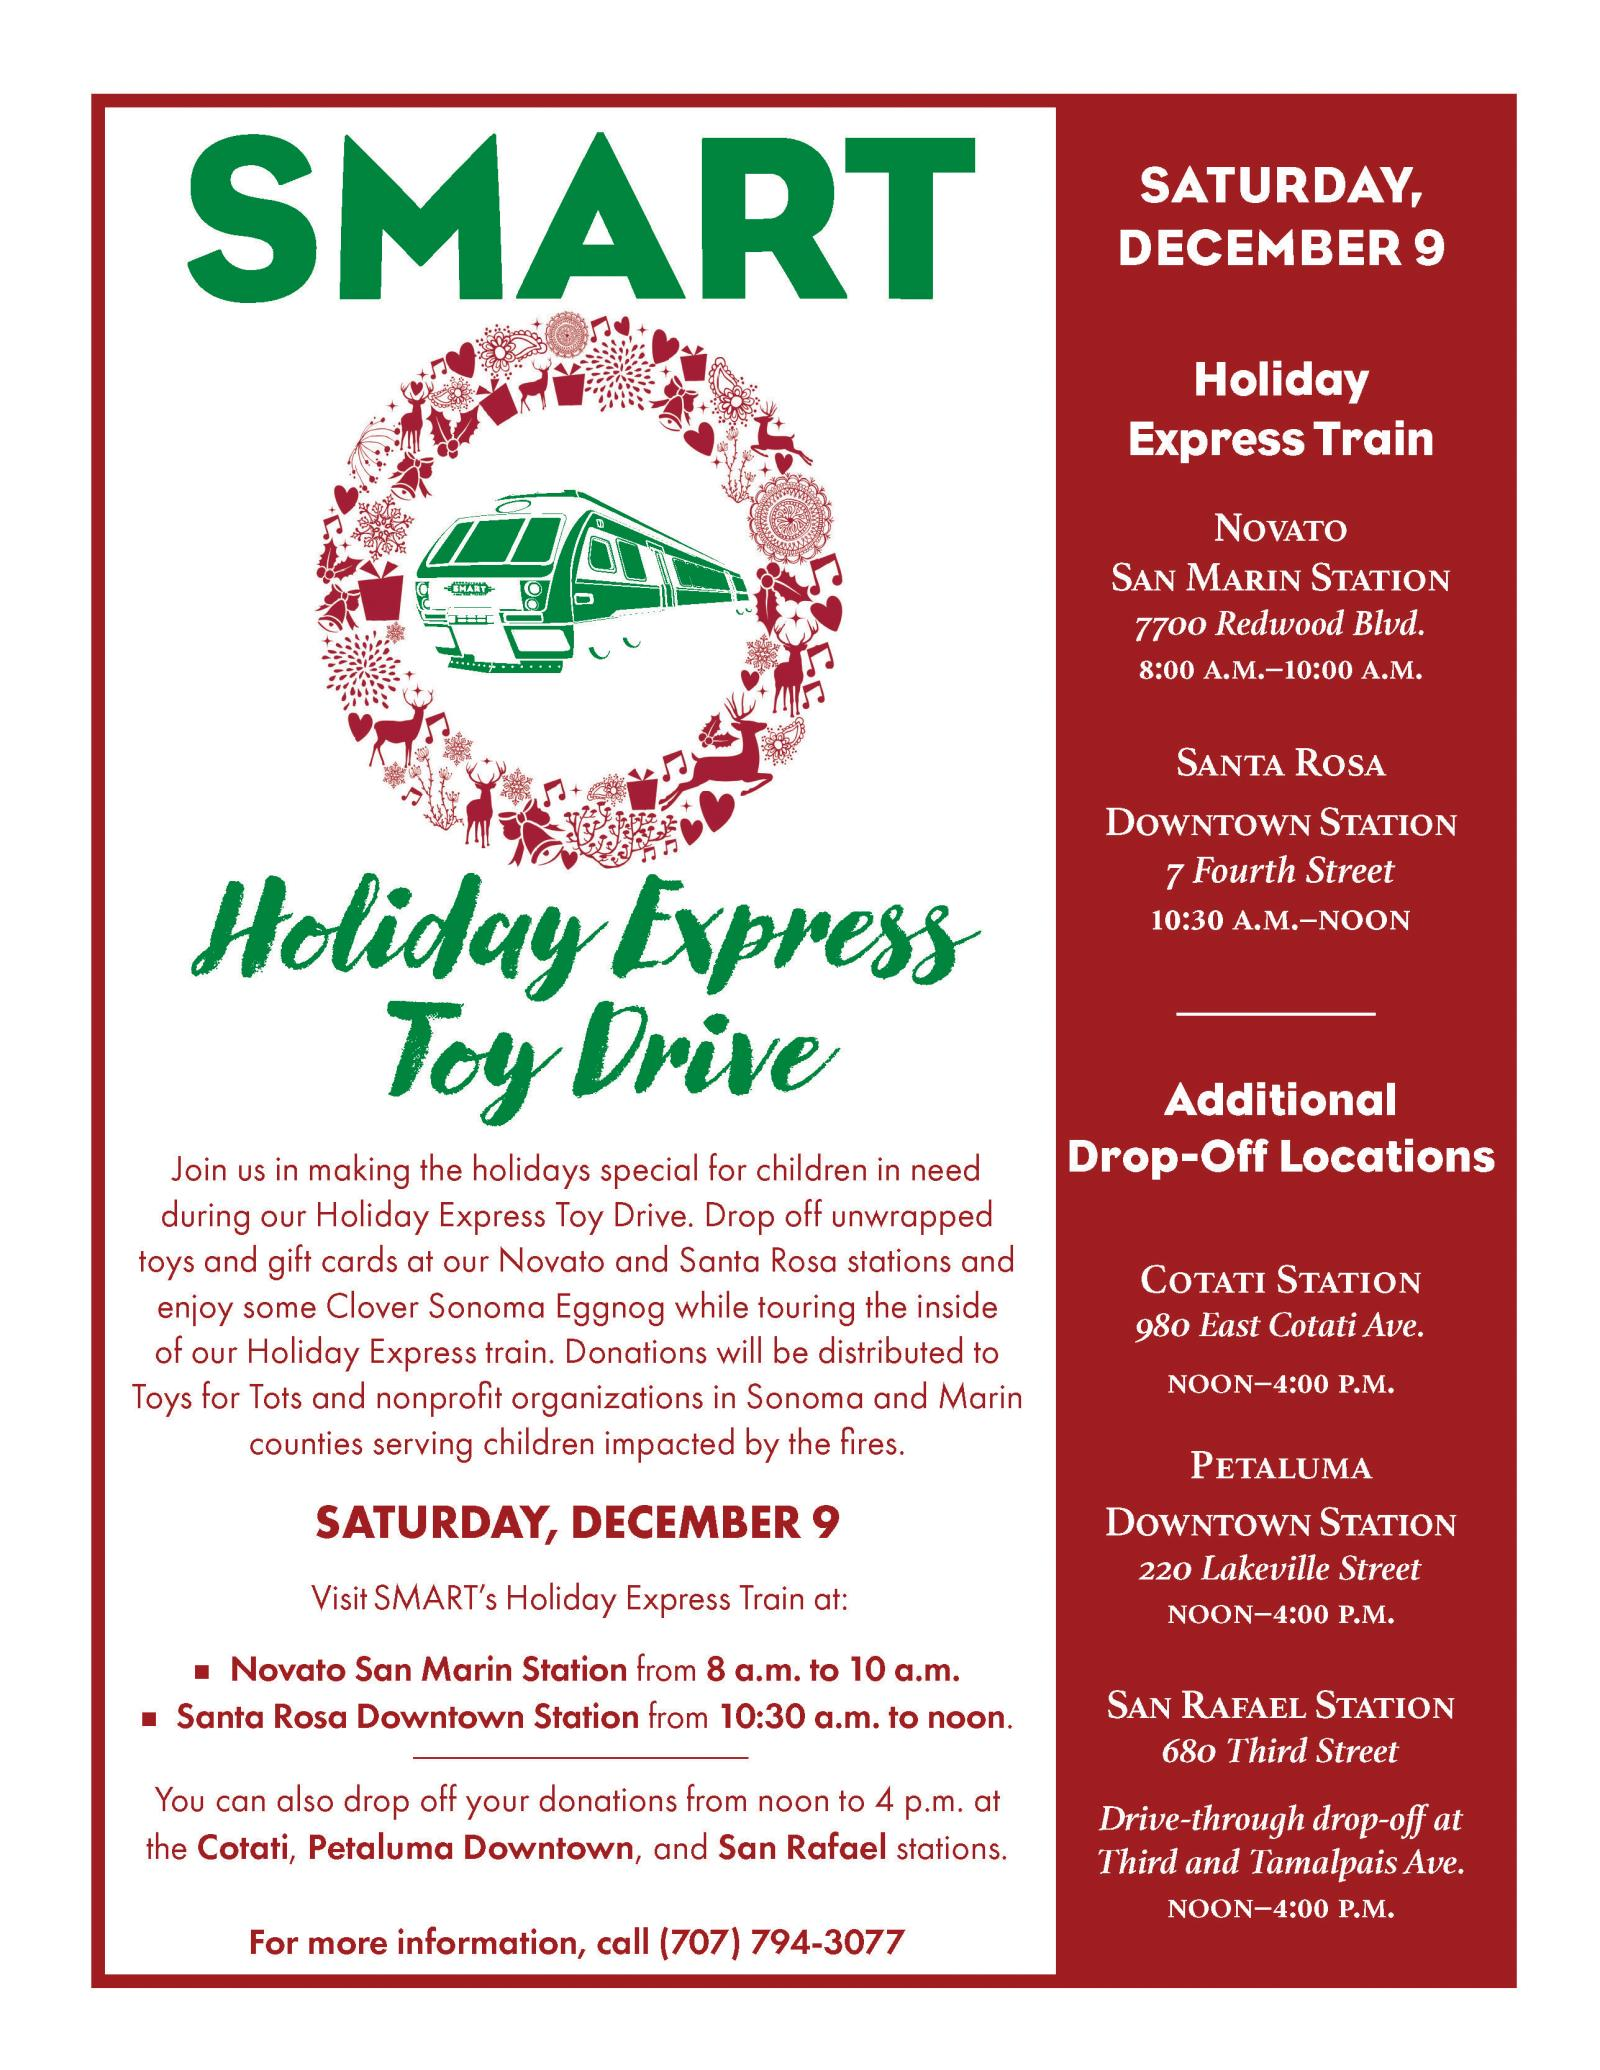 Image of holiday express flyer